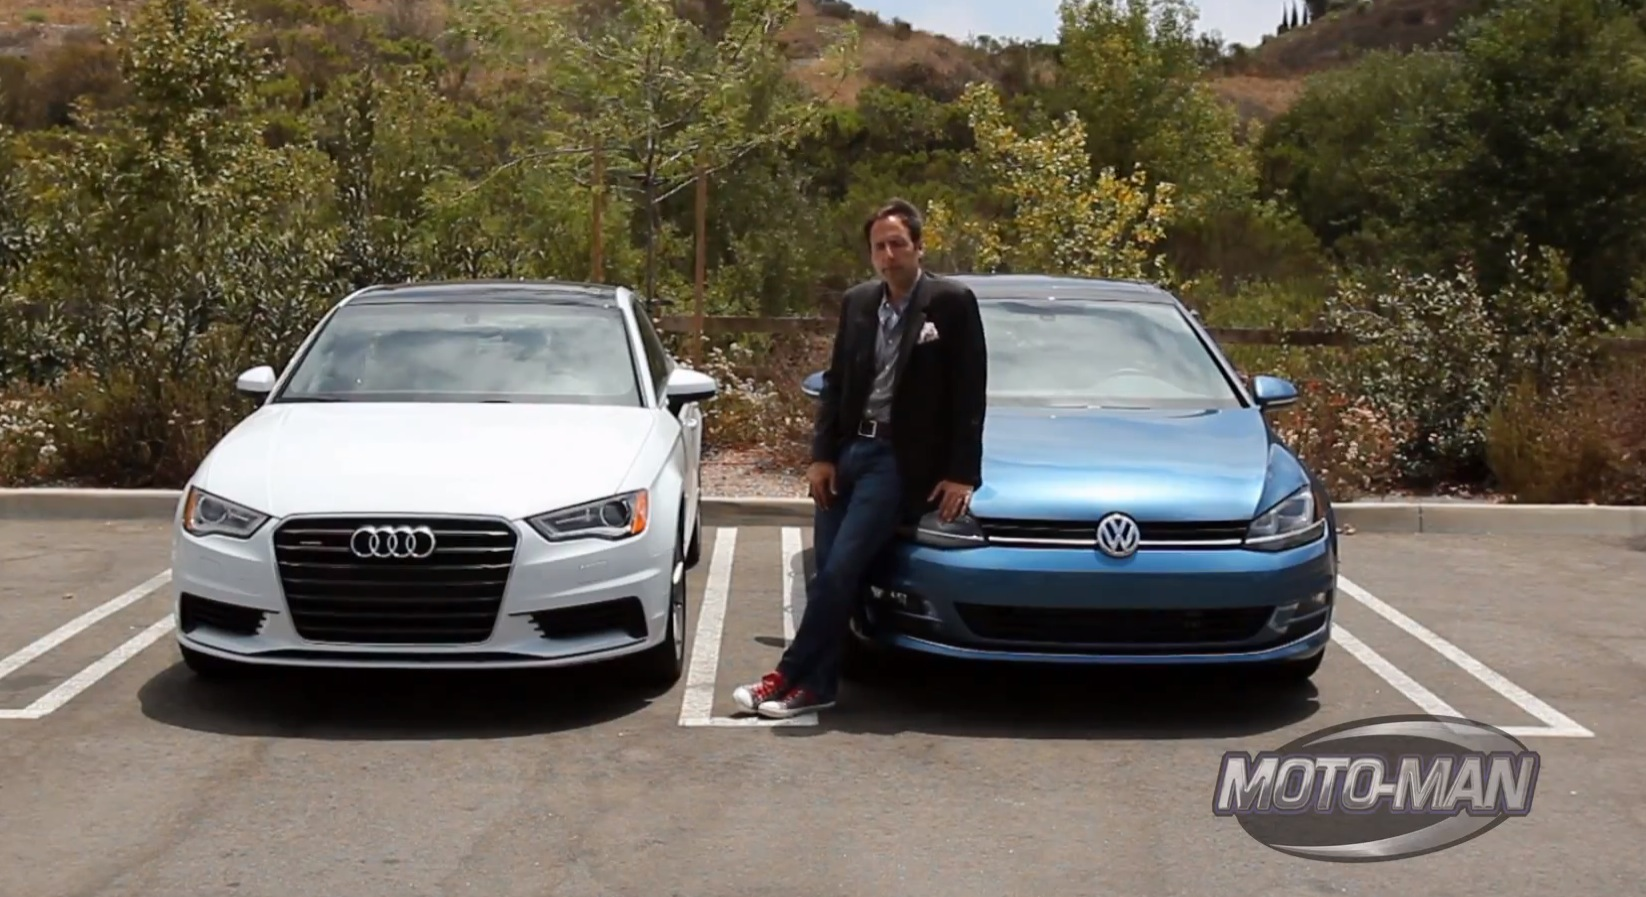 People Who Buy Junk Cars >> 2015 Audi A3 vs 2015 Volkswagen Golf: What's the Difference Between the MQB Twins - autoevolution